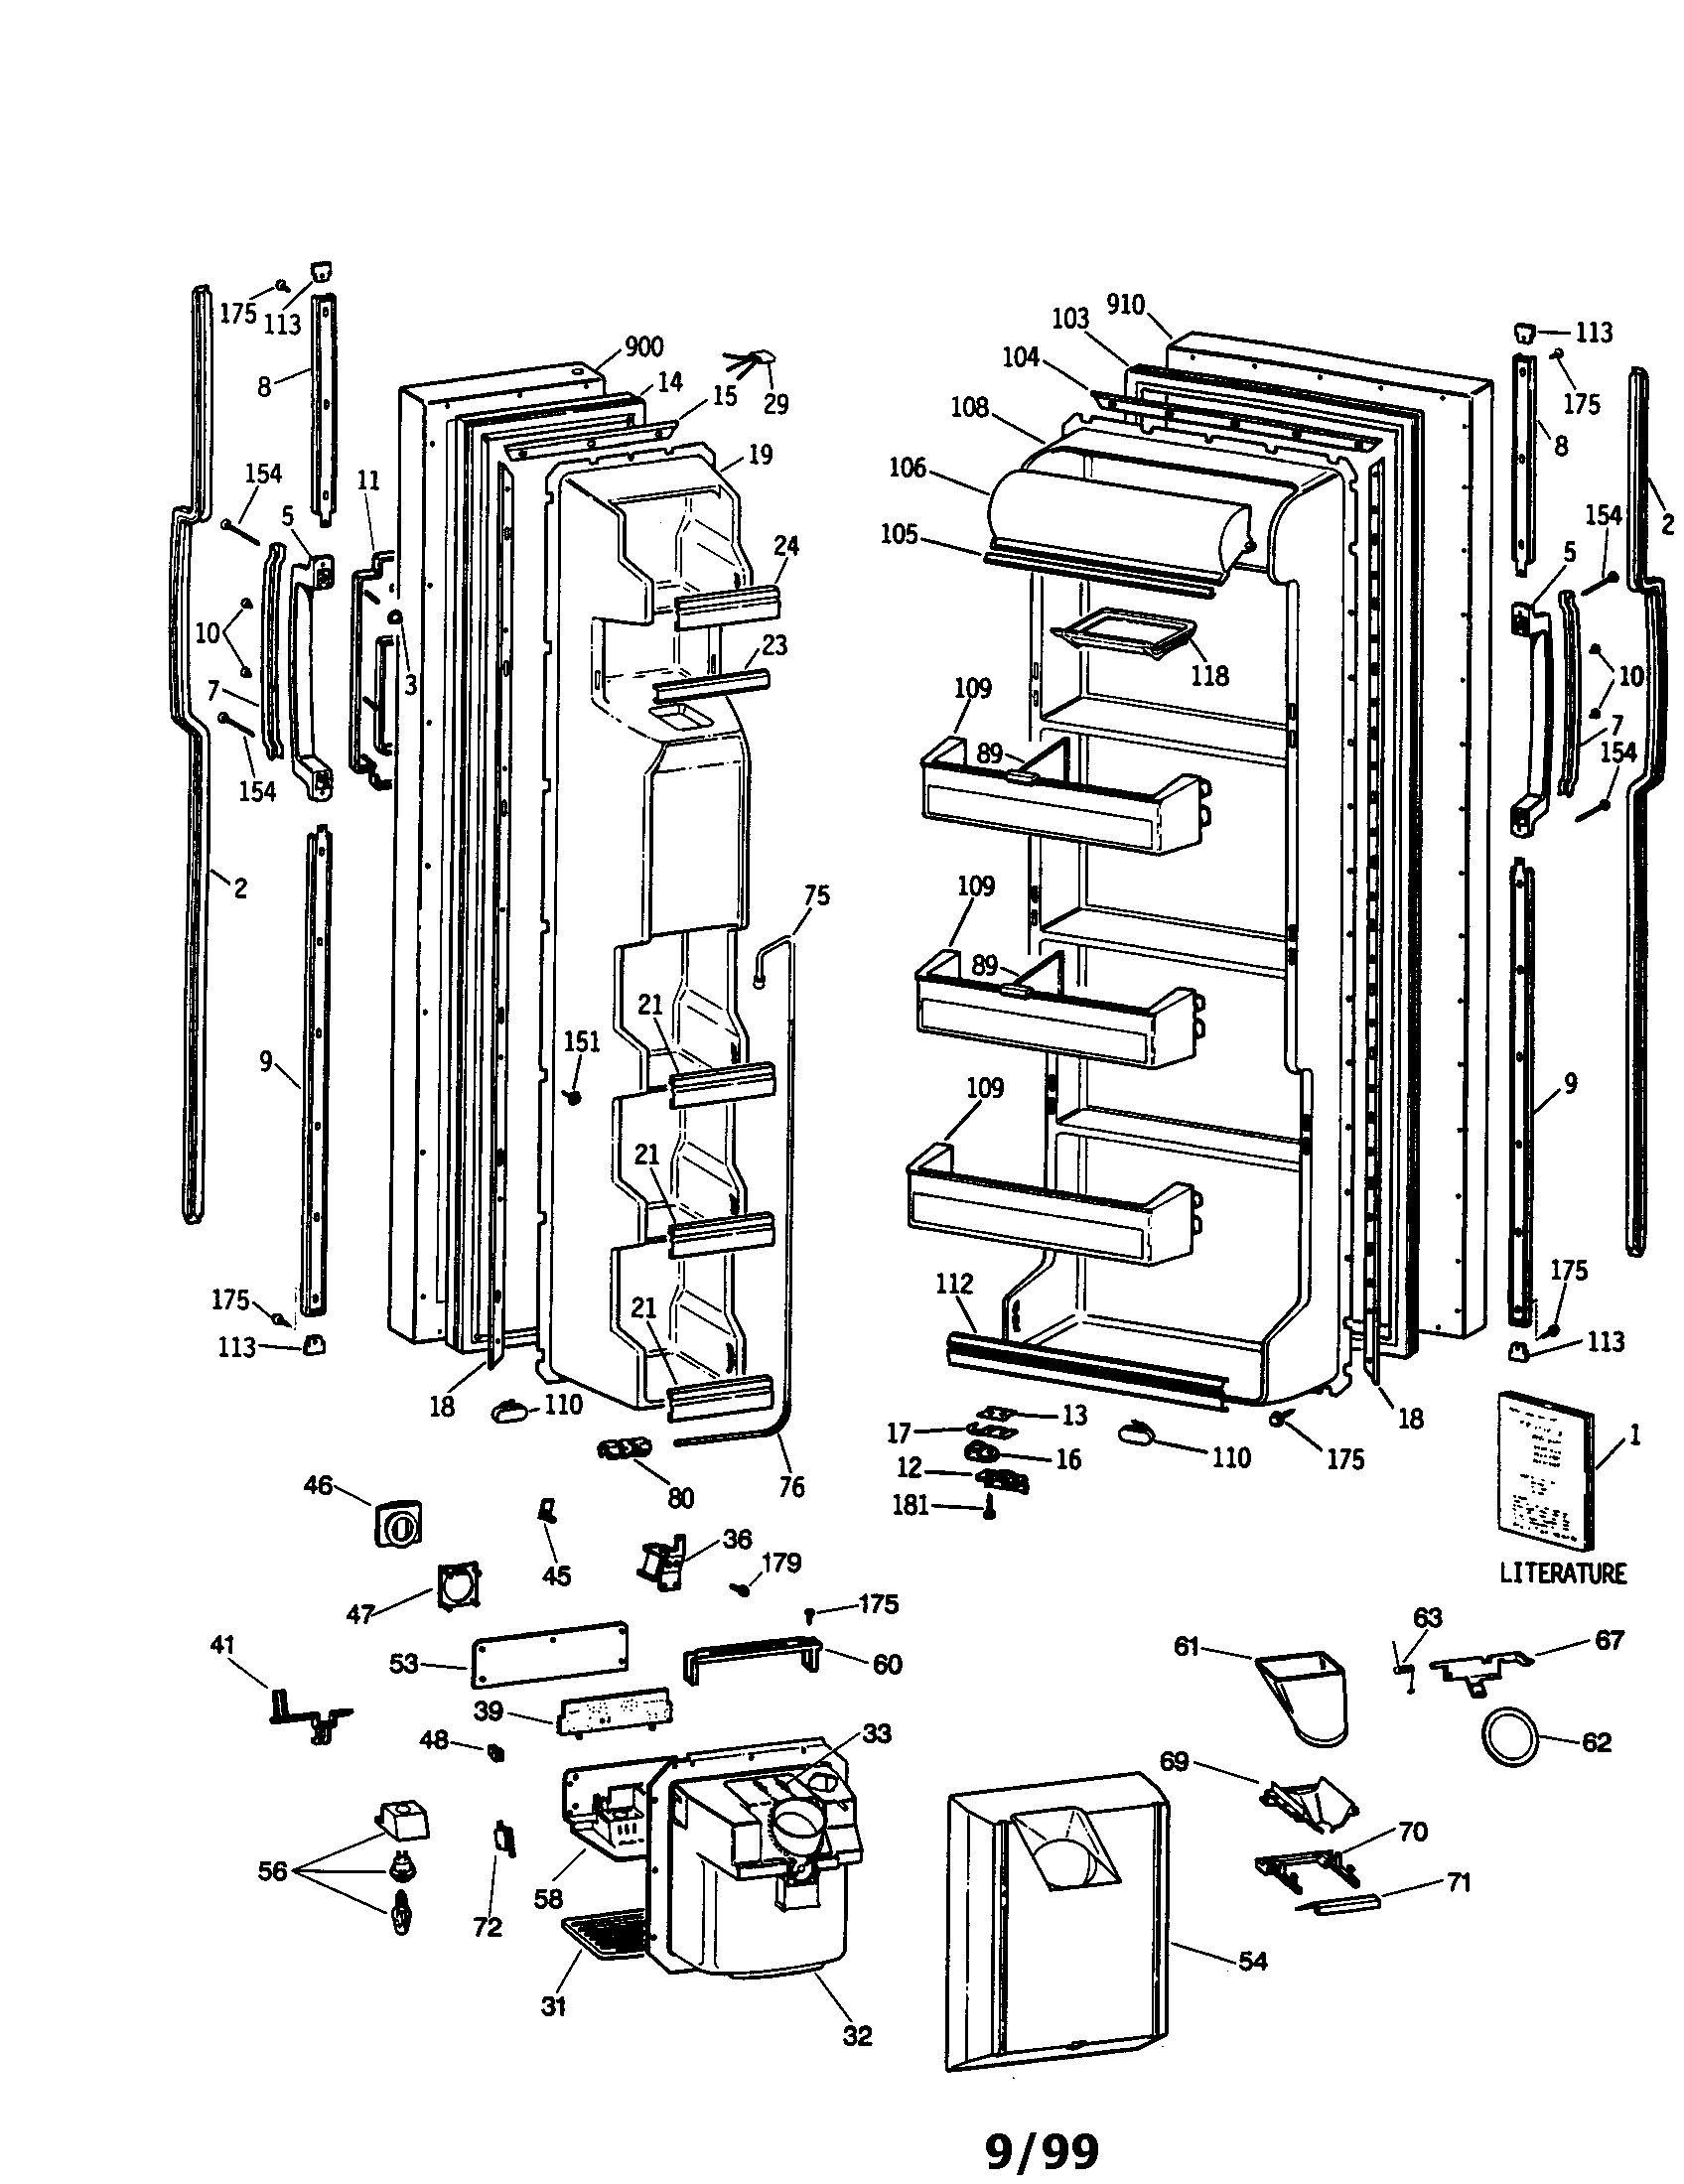 Refrigerator Parts: Ge Side By Side Refrigerator Parts Diagram